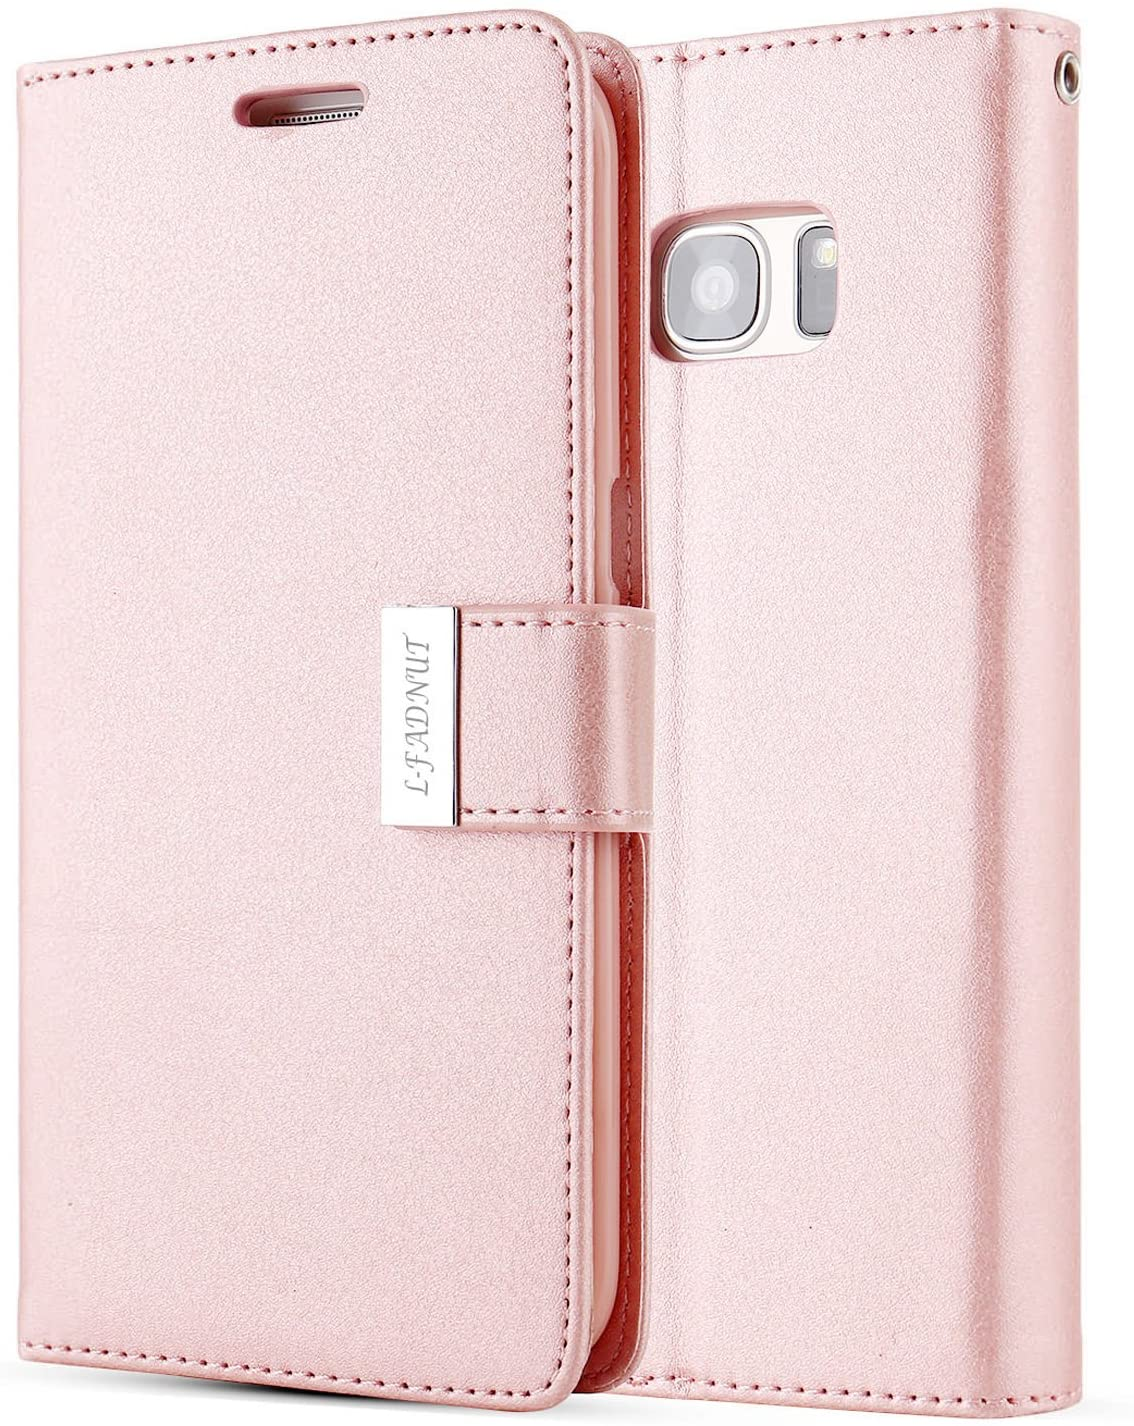 L-FADNUT for Samsung Galaxy S6 Edge Case, Luxury Flip PU Leather Case,Dual Card Slots Metal Megnetic Closure Stand Wallet Card Holder Case Cover for Samsung Galaxy S6 Edge - Rose Gold